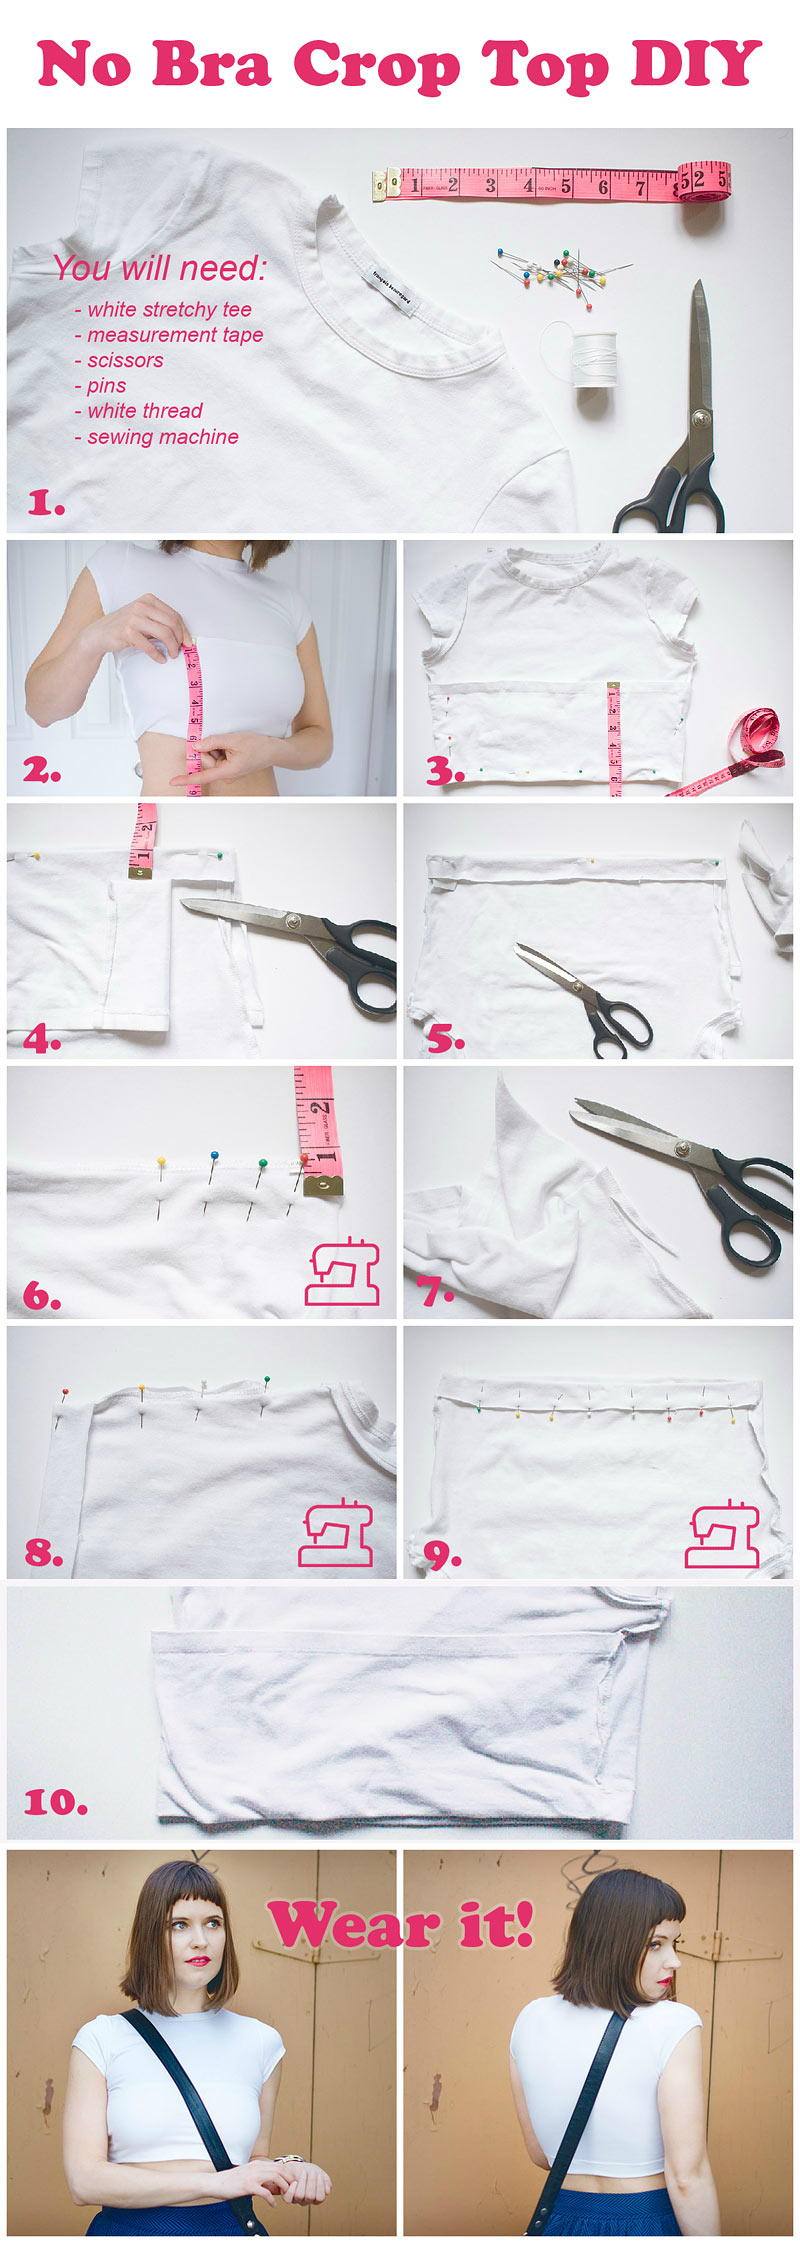 No Bra Crop Top DIY Steps